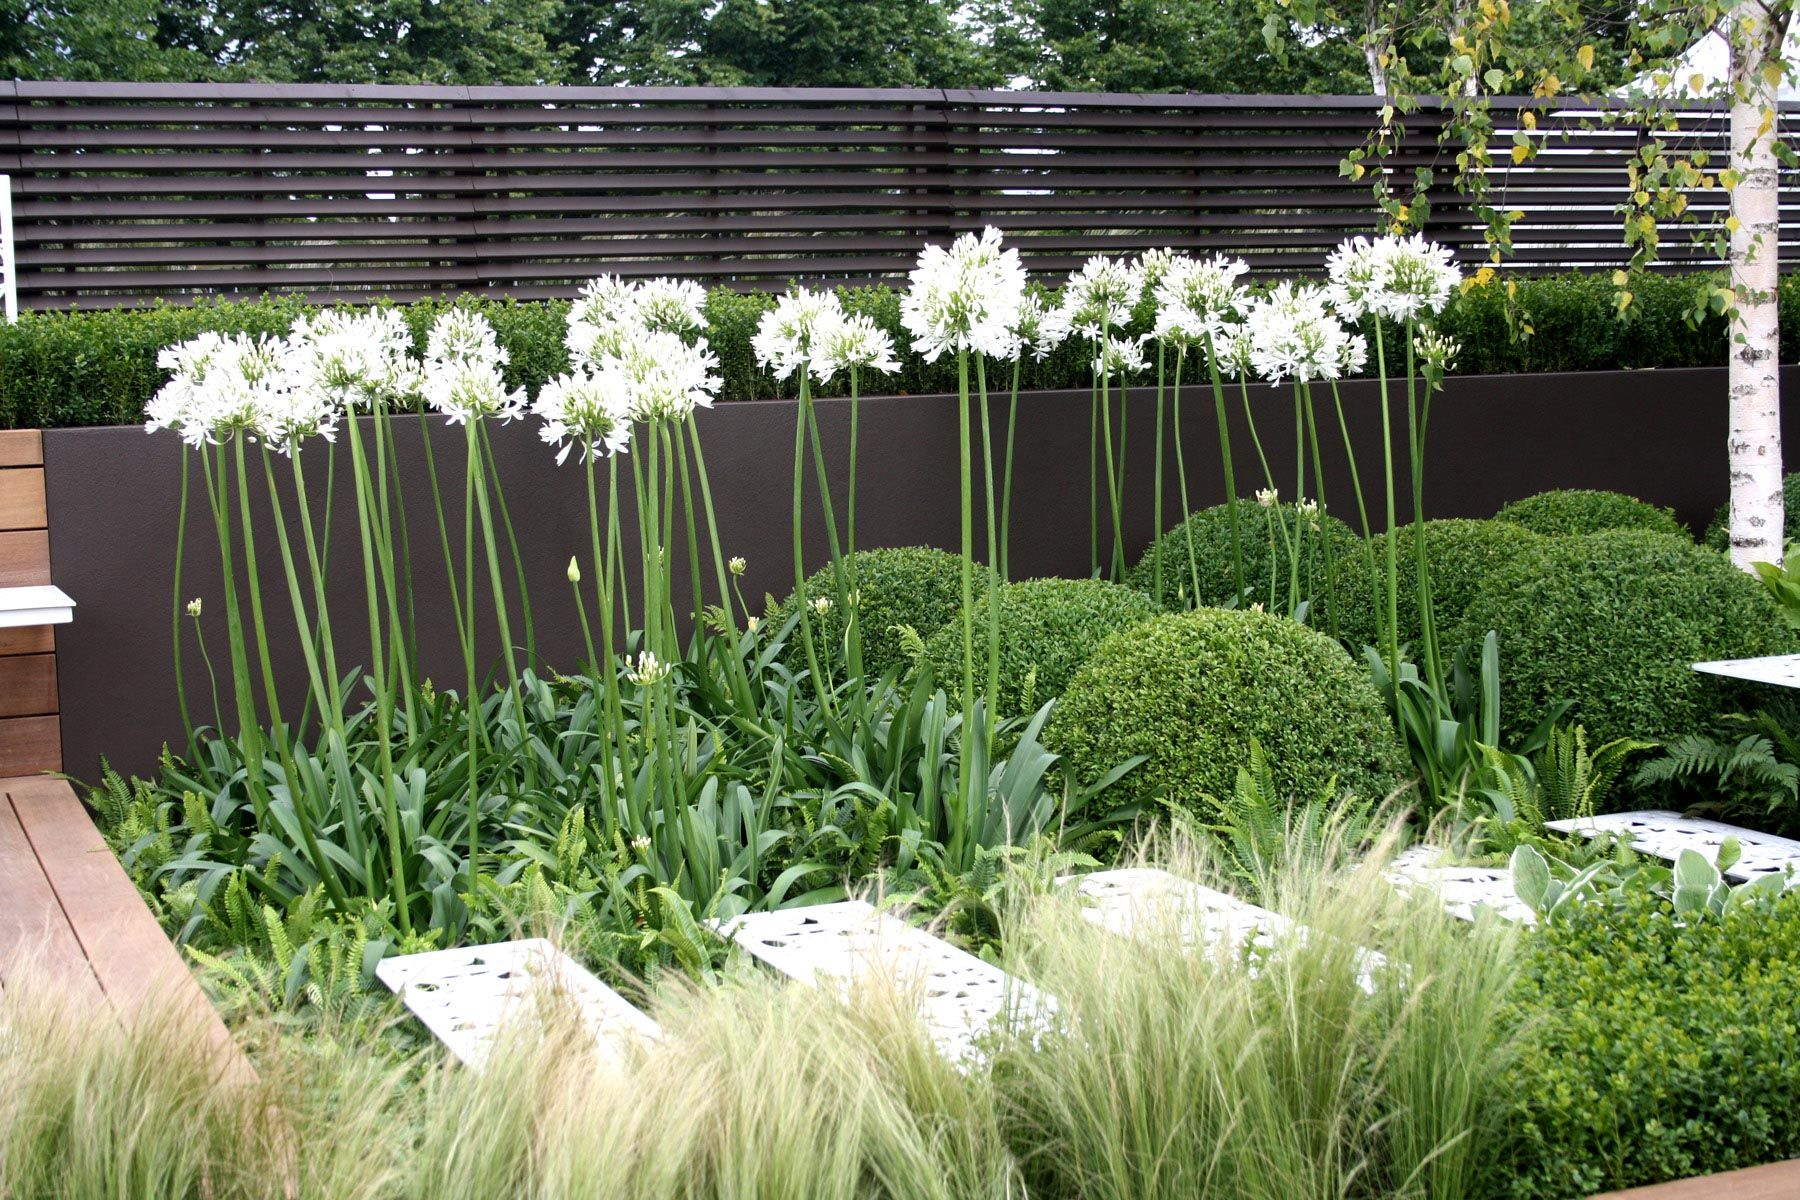 buxus, agapanthus & silver birch | gardens | pinterest | buxus and